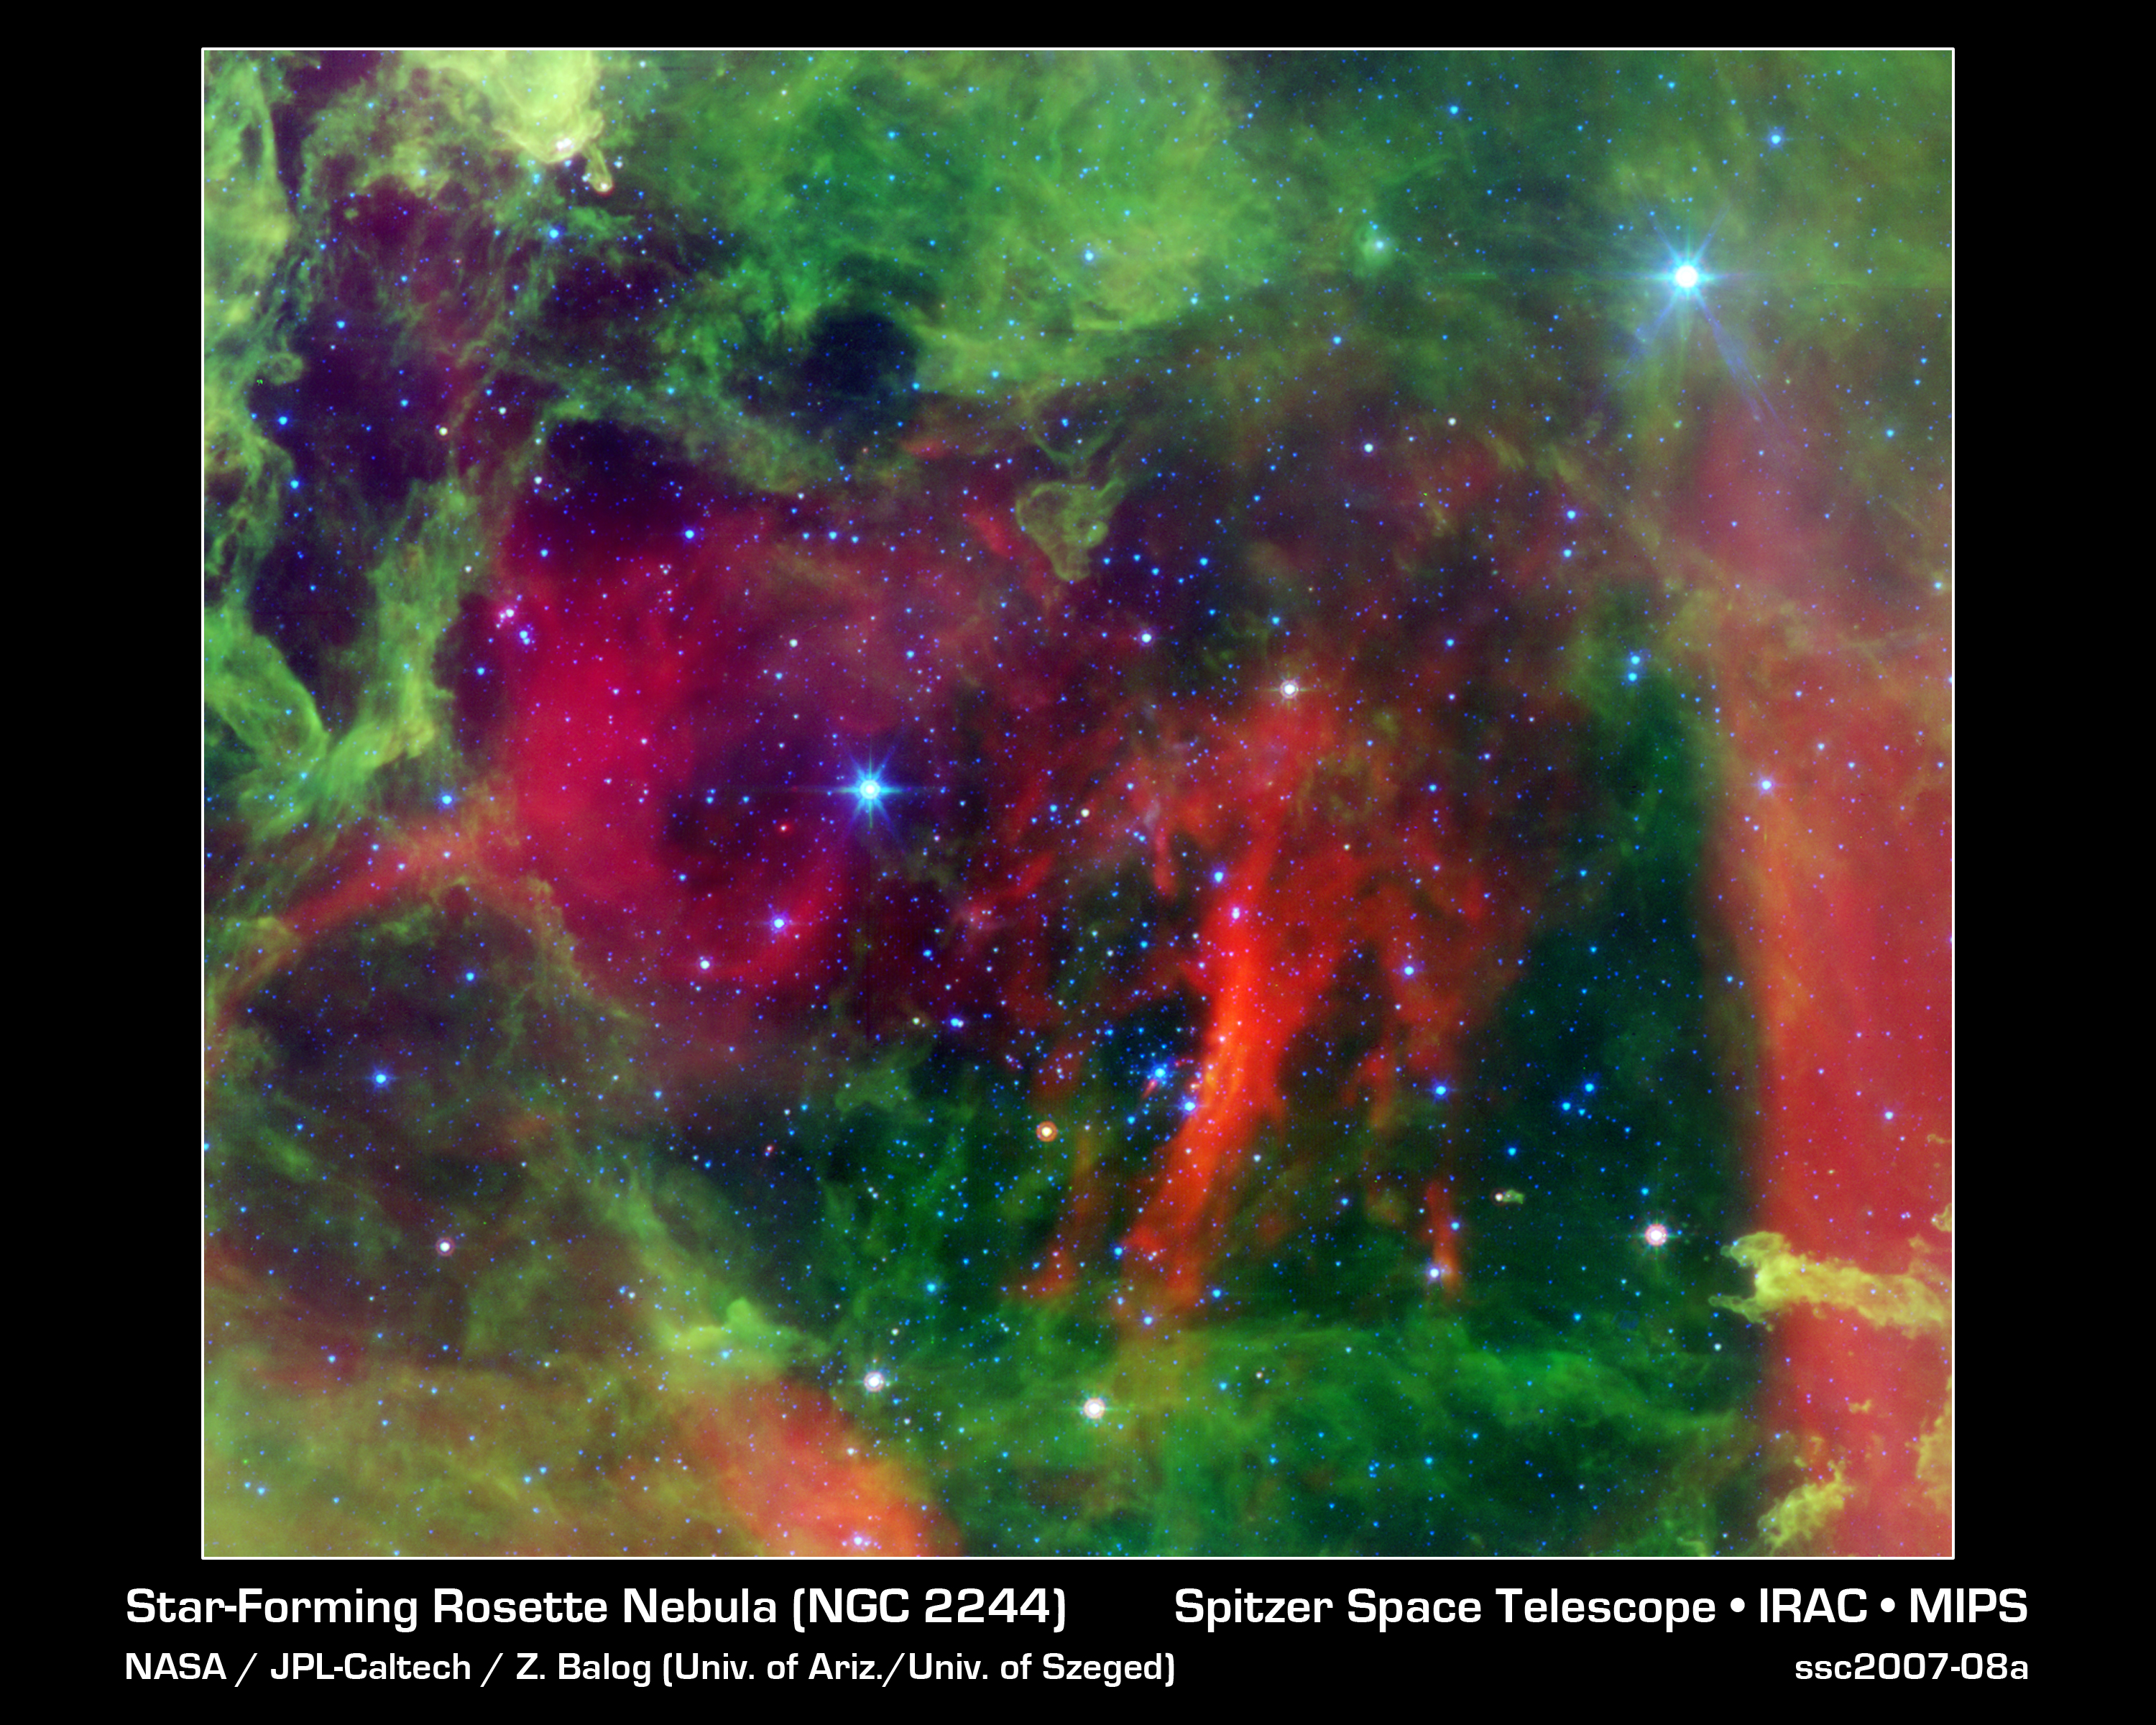 Heart of the Rosette Nebula